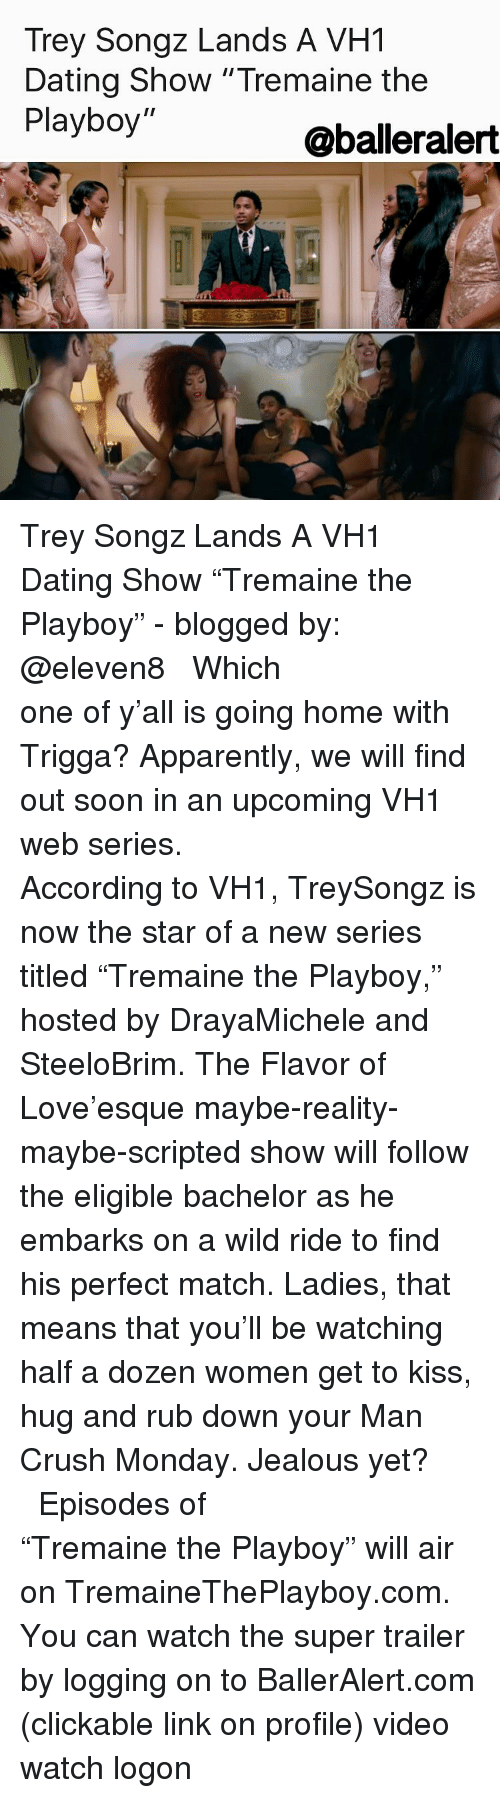 "Memes, Trey Songz, and Man Crush Monday: Trey Songz Lands A VH1  Dating Show ""Tremaine the  Playboy  @balderalert Trey Songz Lands A VH1 Dating Show ""Tremaine the Playboy"" - blogged by: @eleven8 ⠀⠀⠀⠀⠀⠀⠀⠀⠀ ⠀⠀⠀⠀⠀⠀⠀⠀⠀ Which one of y'all is going home with Trigga? Apparently, we will find out soon in an upcoming VH1 web series. ⠀⠀⠀⠀⠀⠀⠀⠀⠀ ⠀⠀⠀⠀⠀⠀⠀⠀⠀ According to VH1, TreySongz is now the star of a new series titled ""Tremaine the Playboy,"" hosted by DrayaMichele and SteeloBrim. The Flavor of Love'esque maybe-reality-maybe-scripted show will follow the eligible bachelor as he embarks on a wild ride to find his perfect match. Ladies, that means that you'll be watching half a dozen women get to kiss, hug and rub down your Man Crush Monday. Jealous yet? ⠀⠀⠀⠀⠀⠀⠀⠀⠀ ⠀⠀⠀⠀⠀⠀⠀⠀⠀ Episodes of ""Tremaine the Playboy"" will air on TremaineThePlayboy.com. You can watch the super trailer by logging on to BallerAlert.com (clickable link on profile) video watch logon"